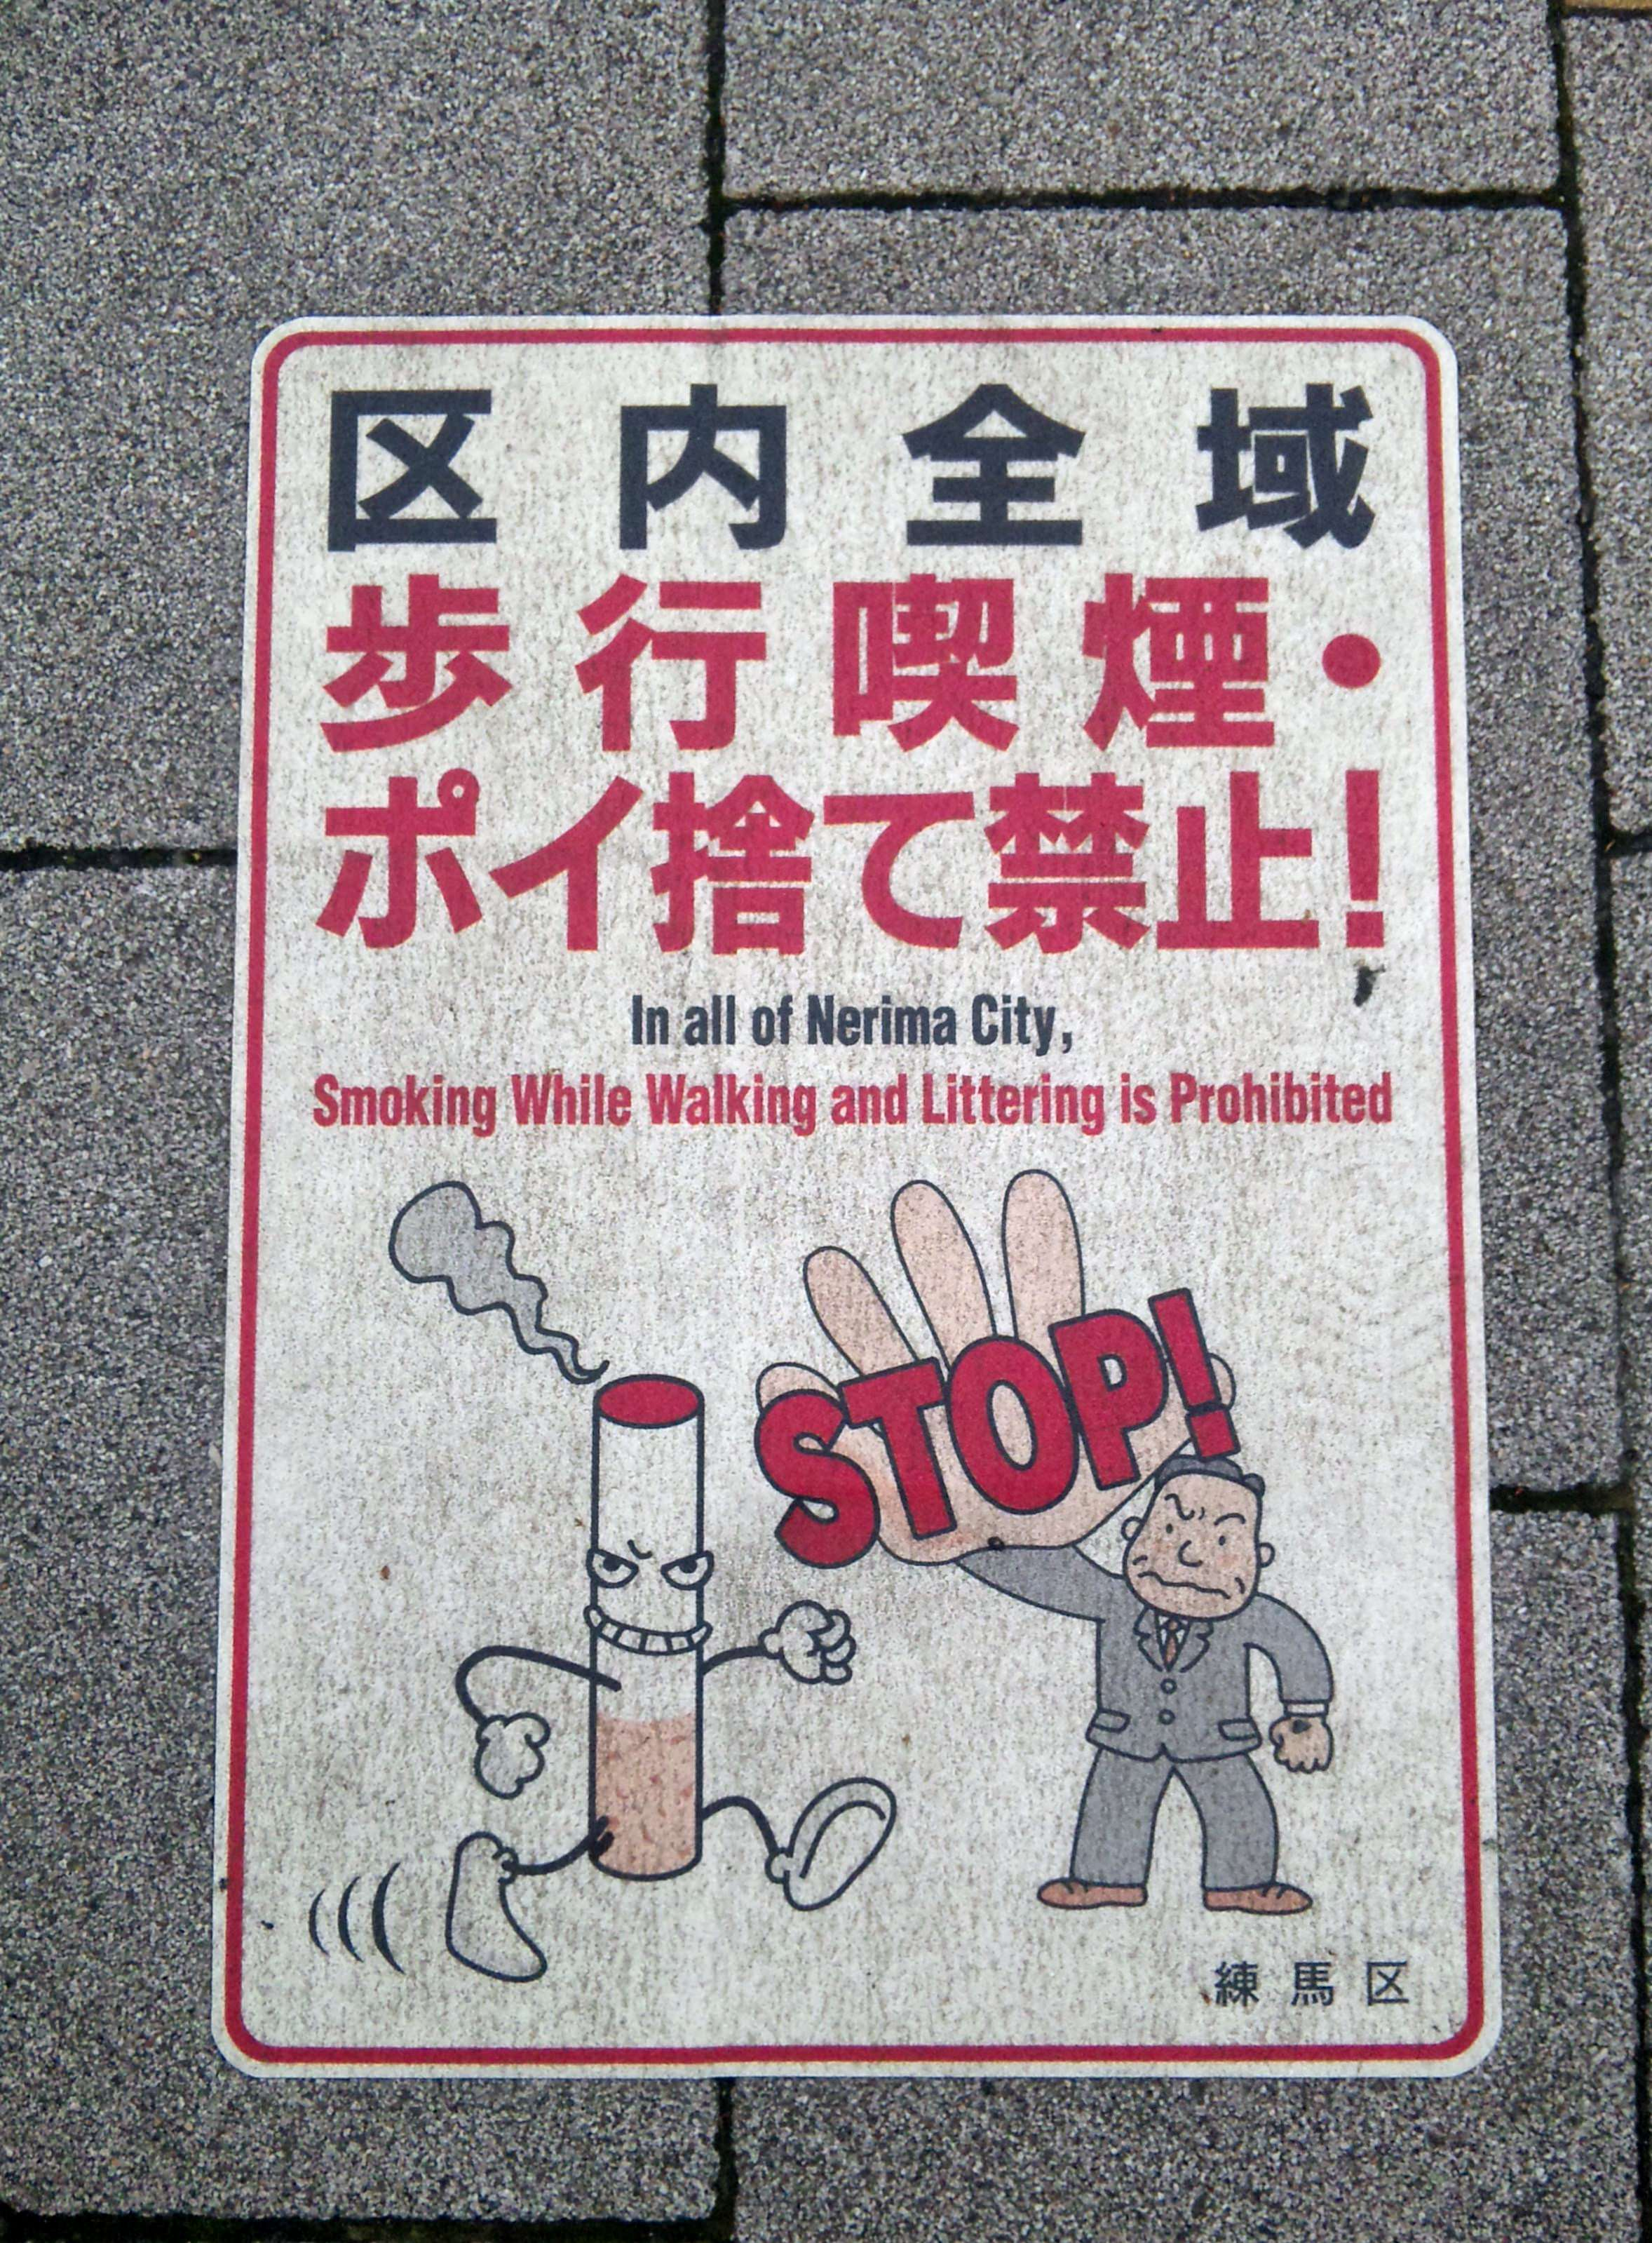 In all of Nerima city, smoking while walking and littering is prohibited